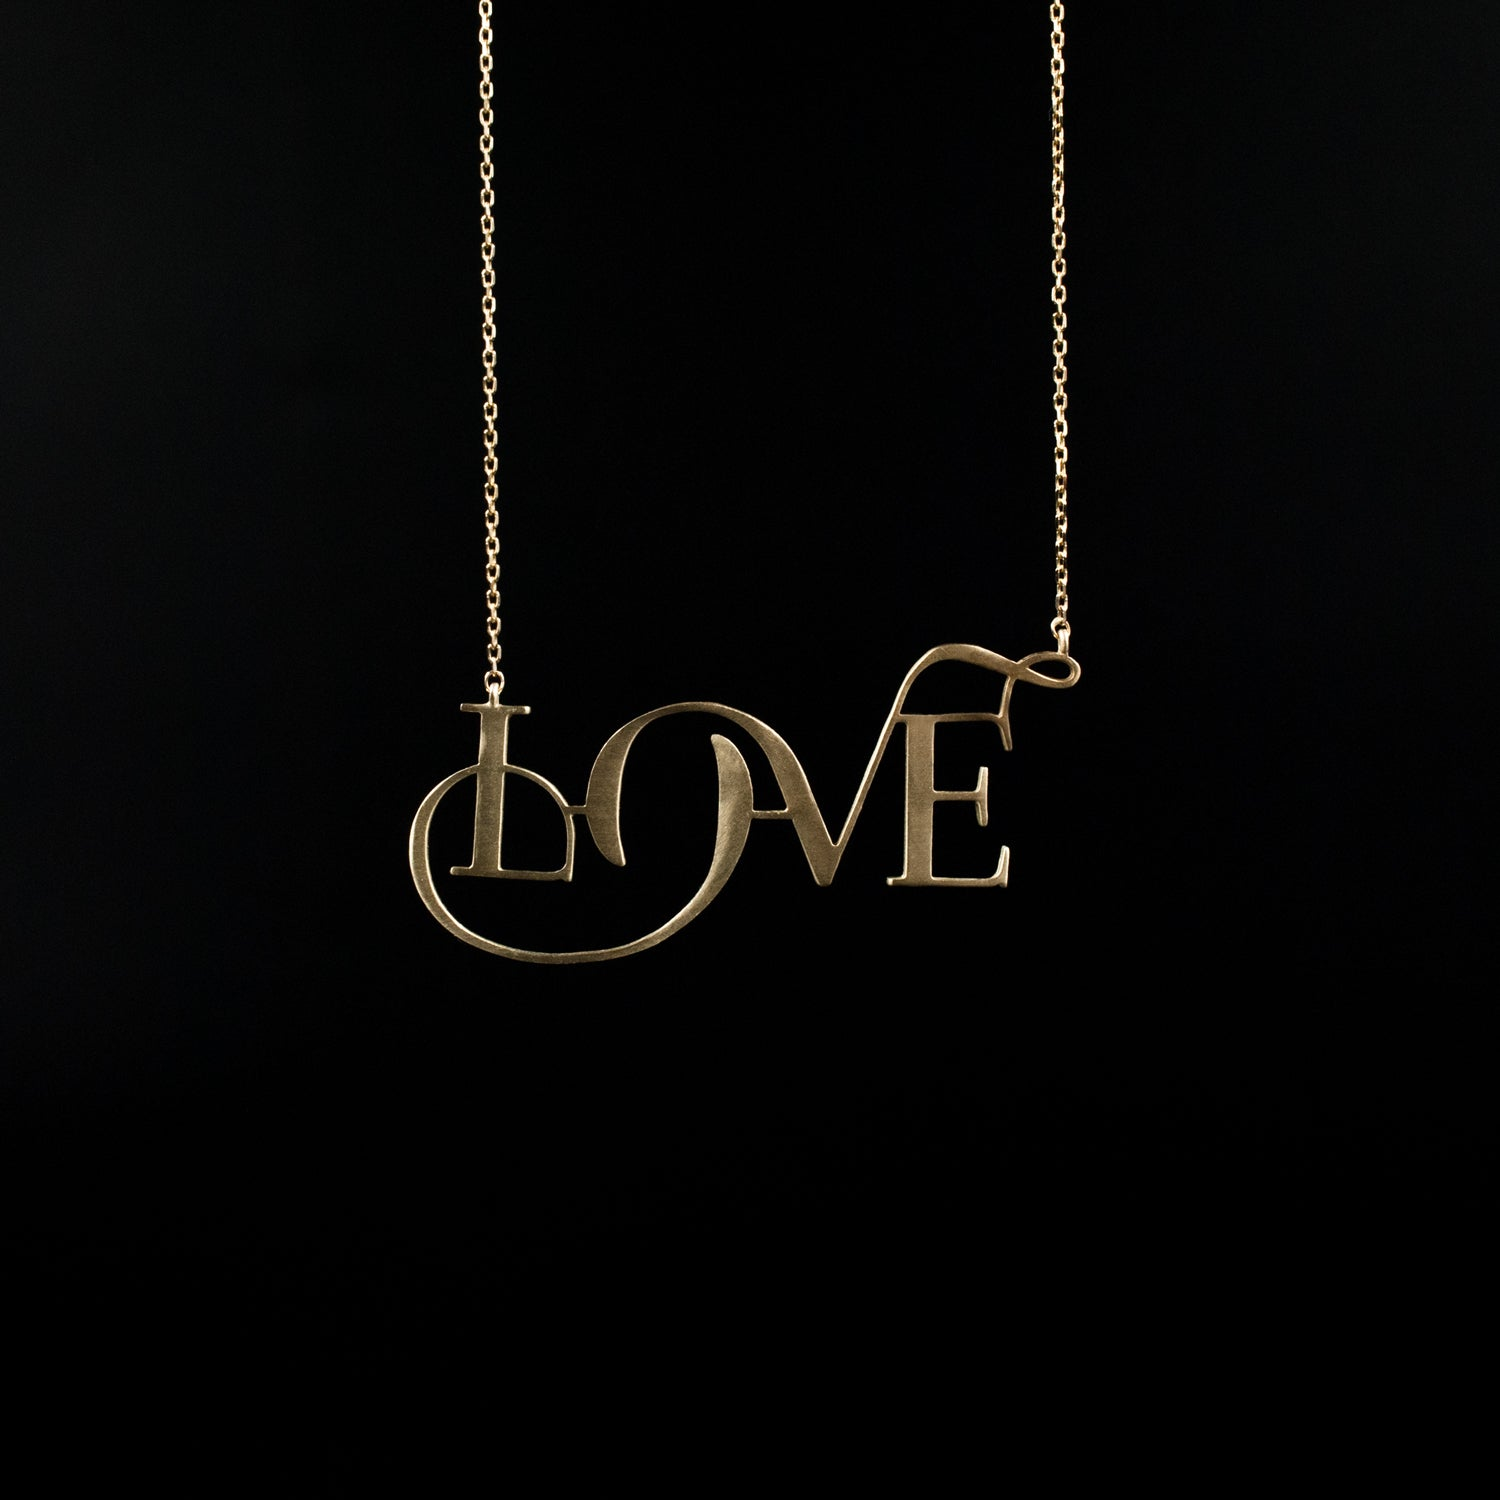 Love Necklace - Designed by Moshik Nadav Fashion Typography